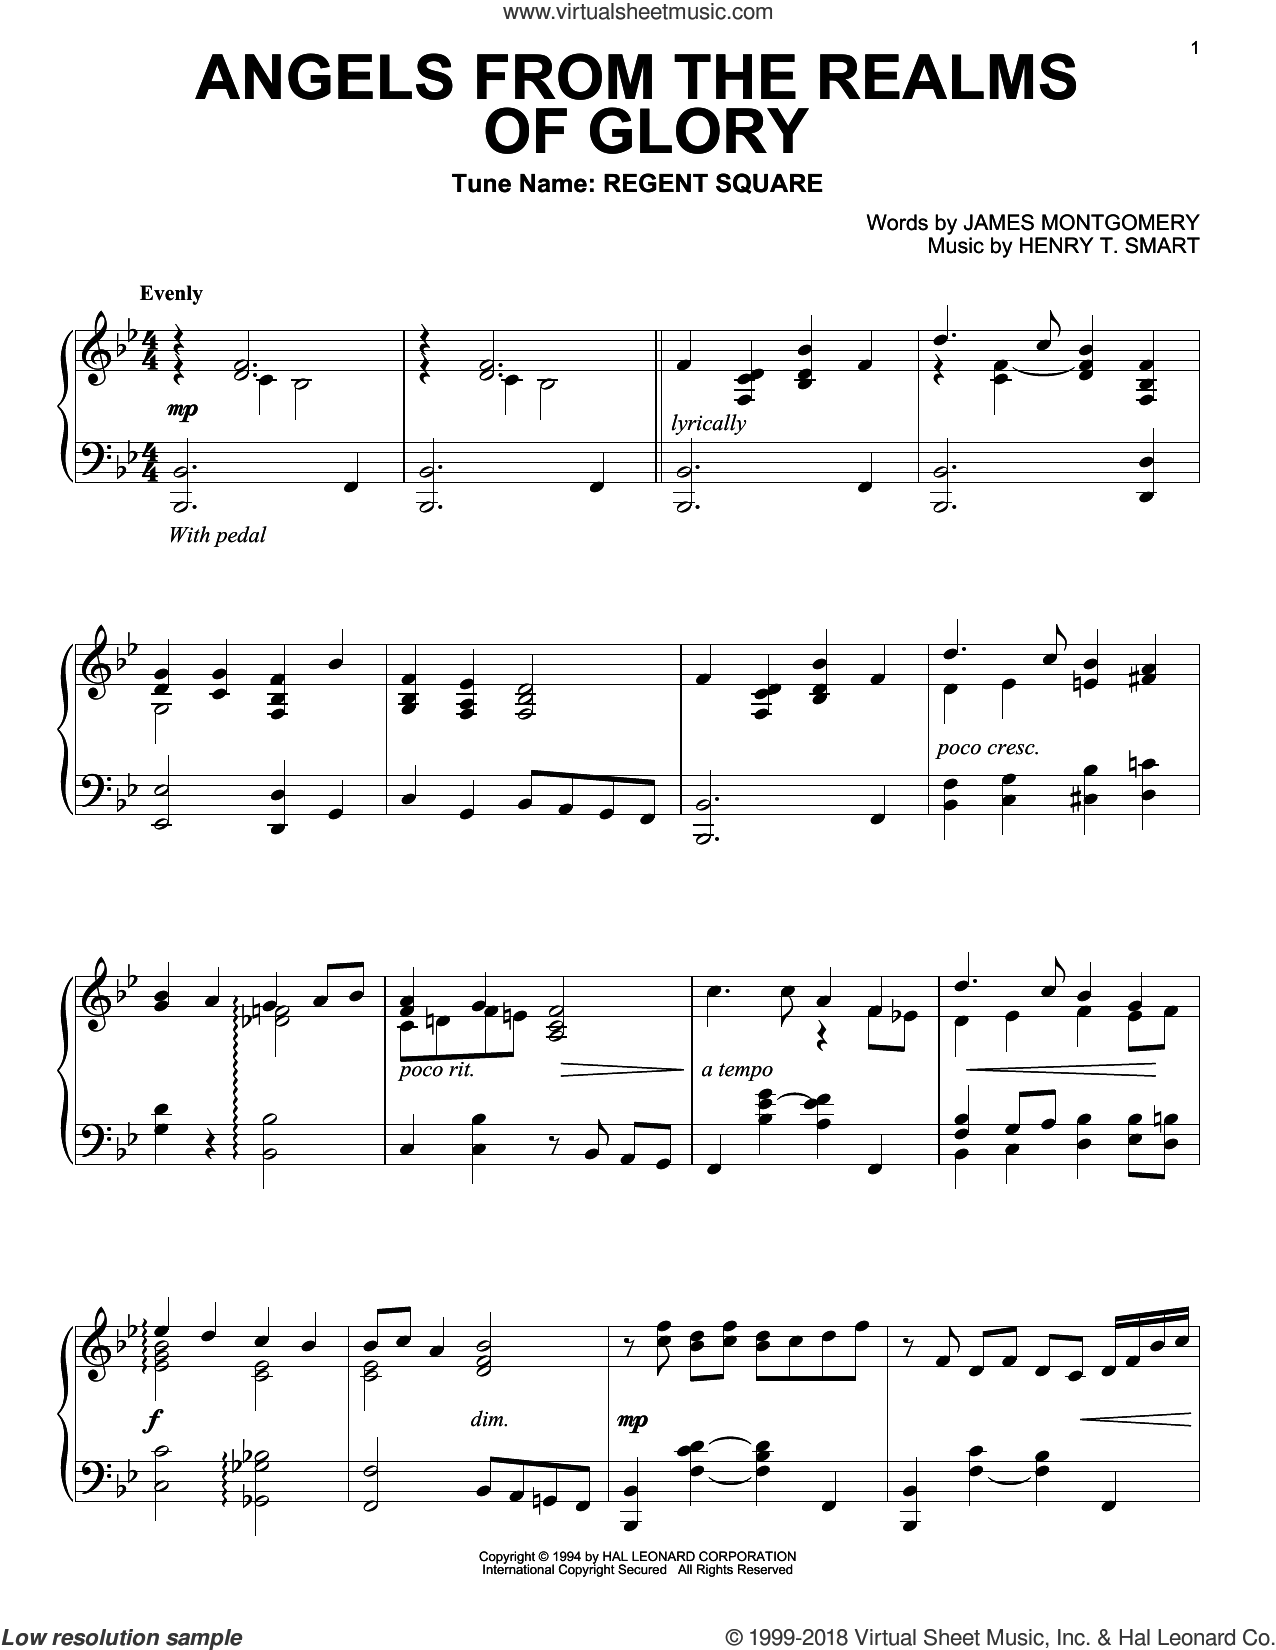 Angels From The Realms Of Glory sheet music for piano solo by Henry T. Smart